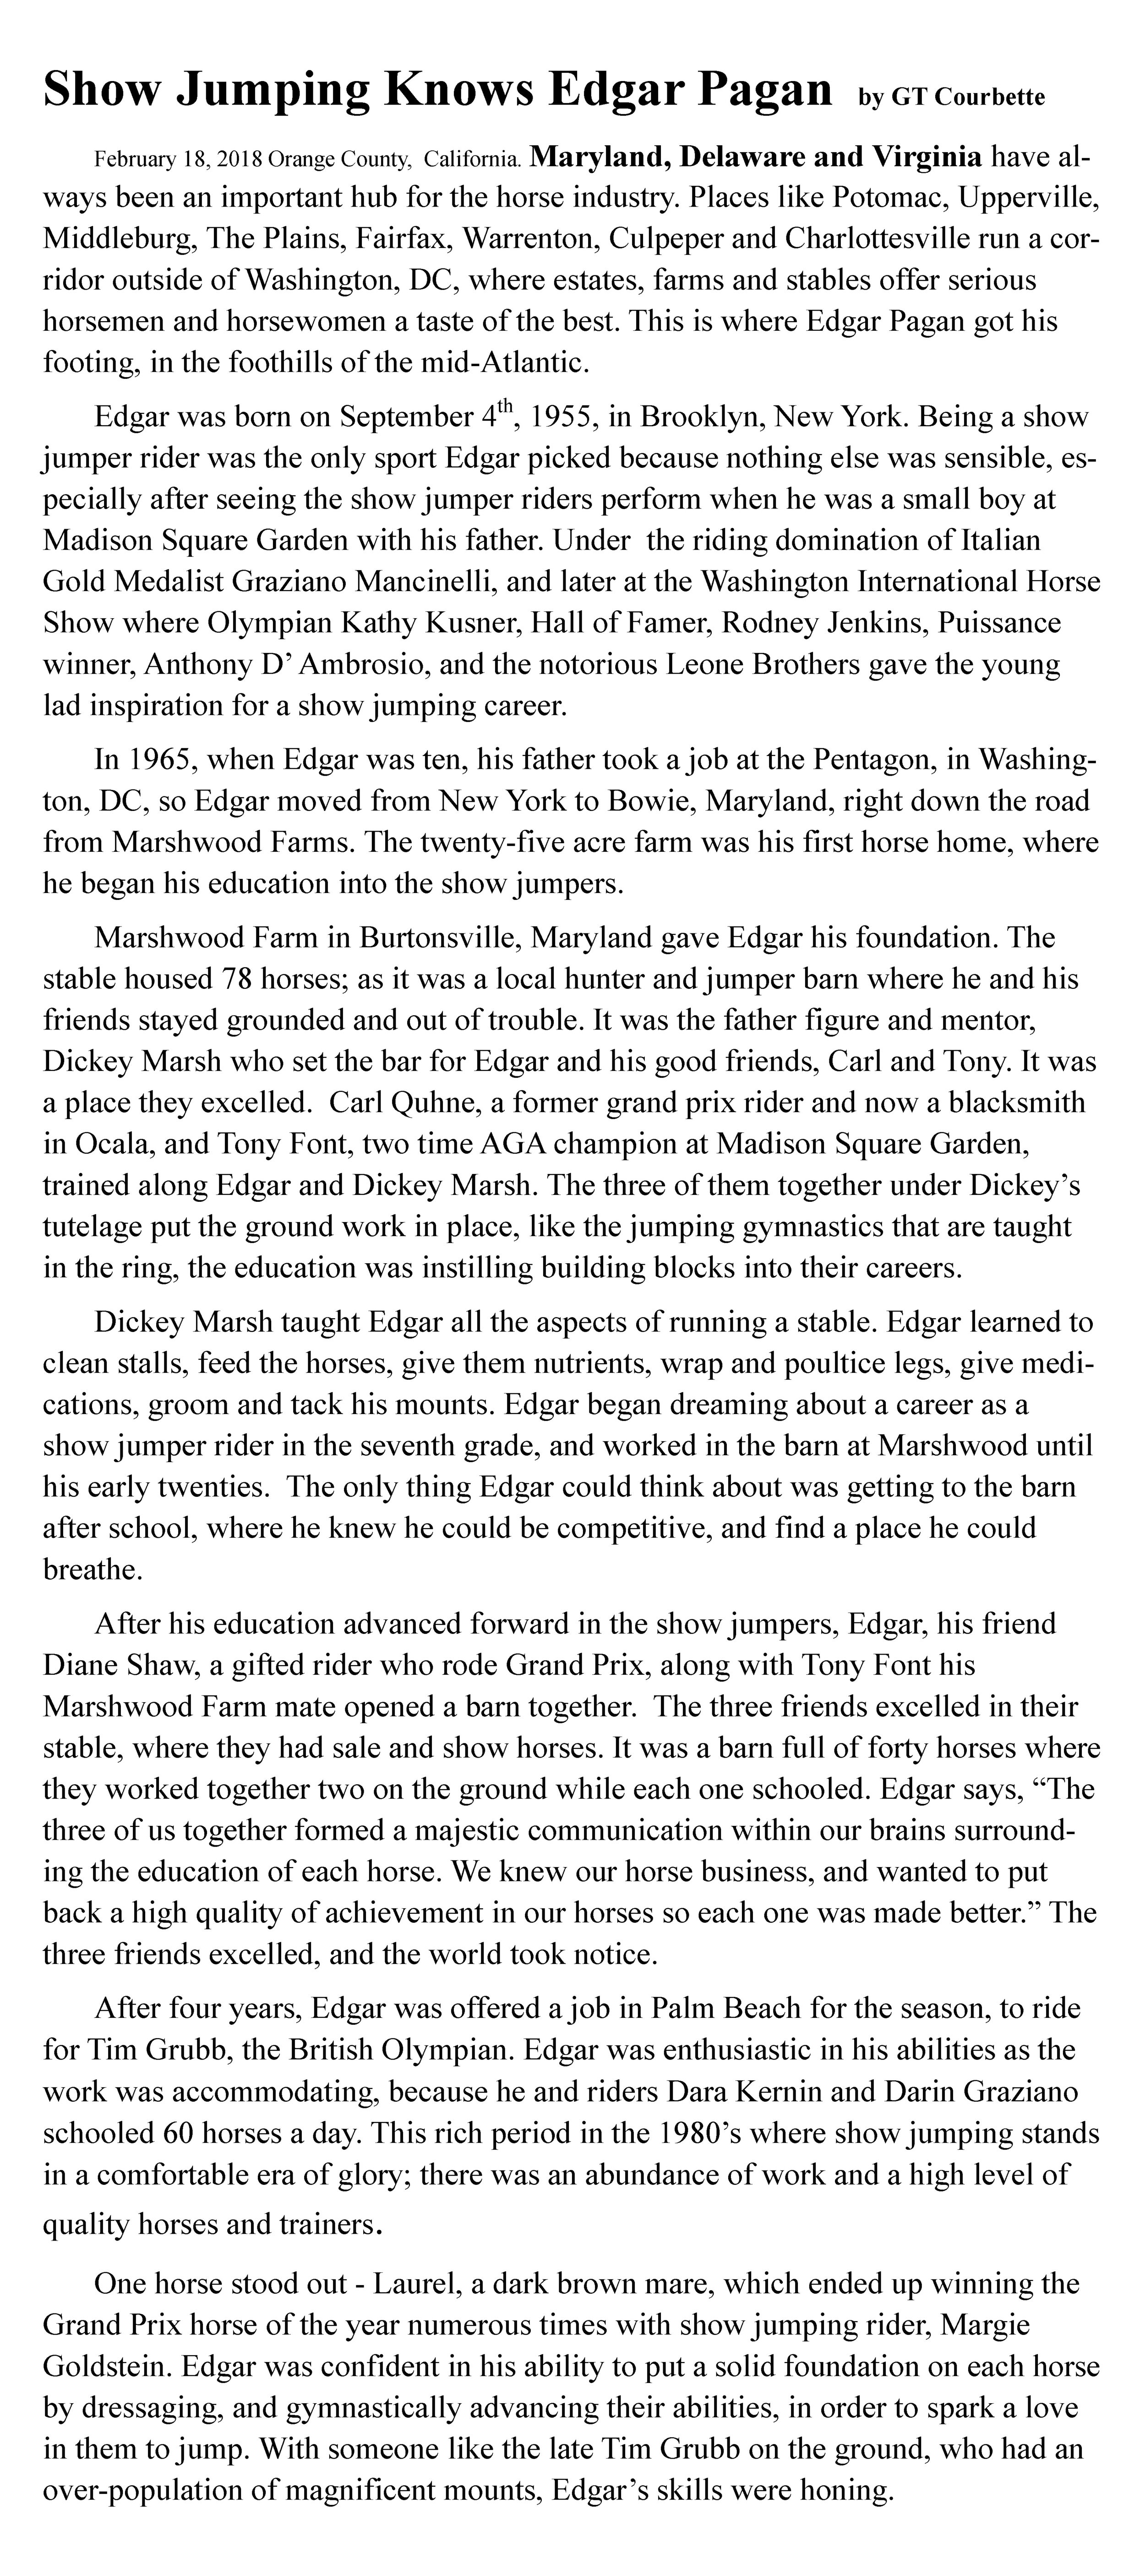 Show Jumping Knows Edgar Pagan by GT Courbette wo pictures_Page_1.jpg